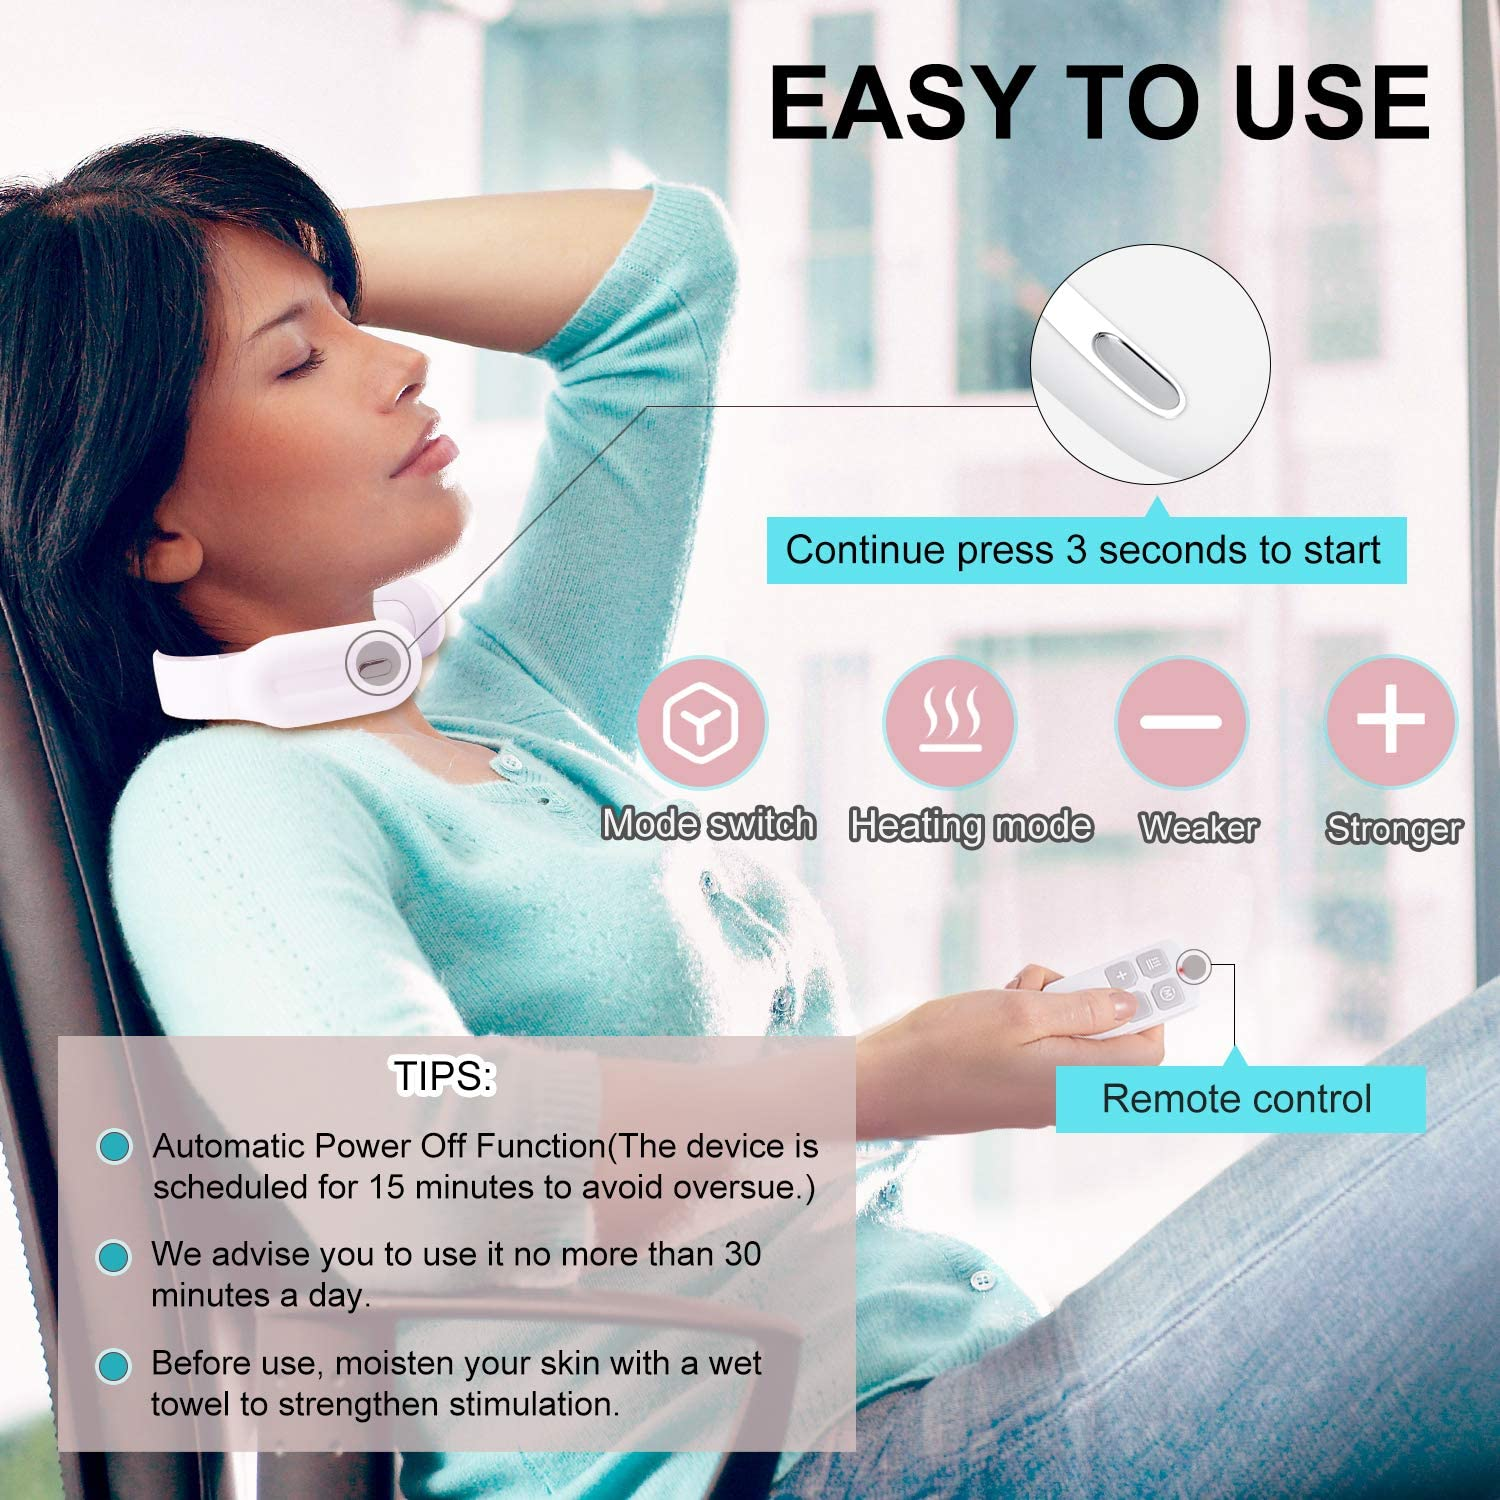 smart neck massager easy to use